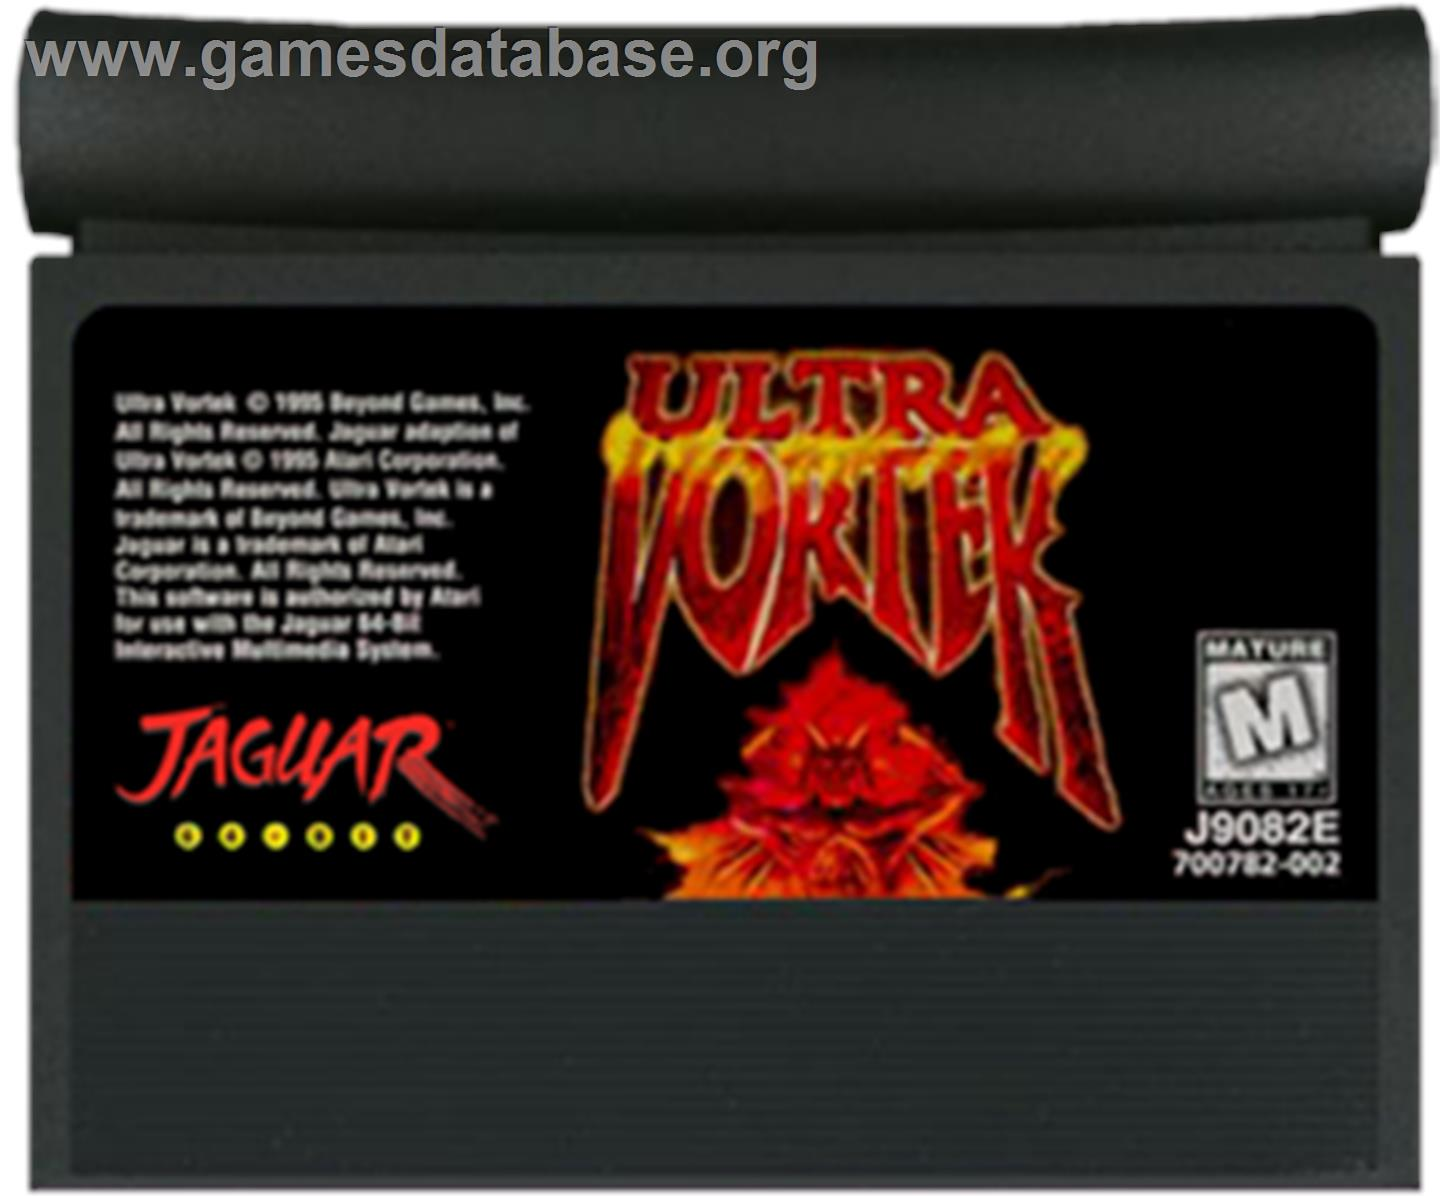 Ultra Vortek (Beta) - Atari Jaguar - Artwork - Cartridge